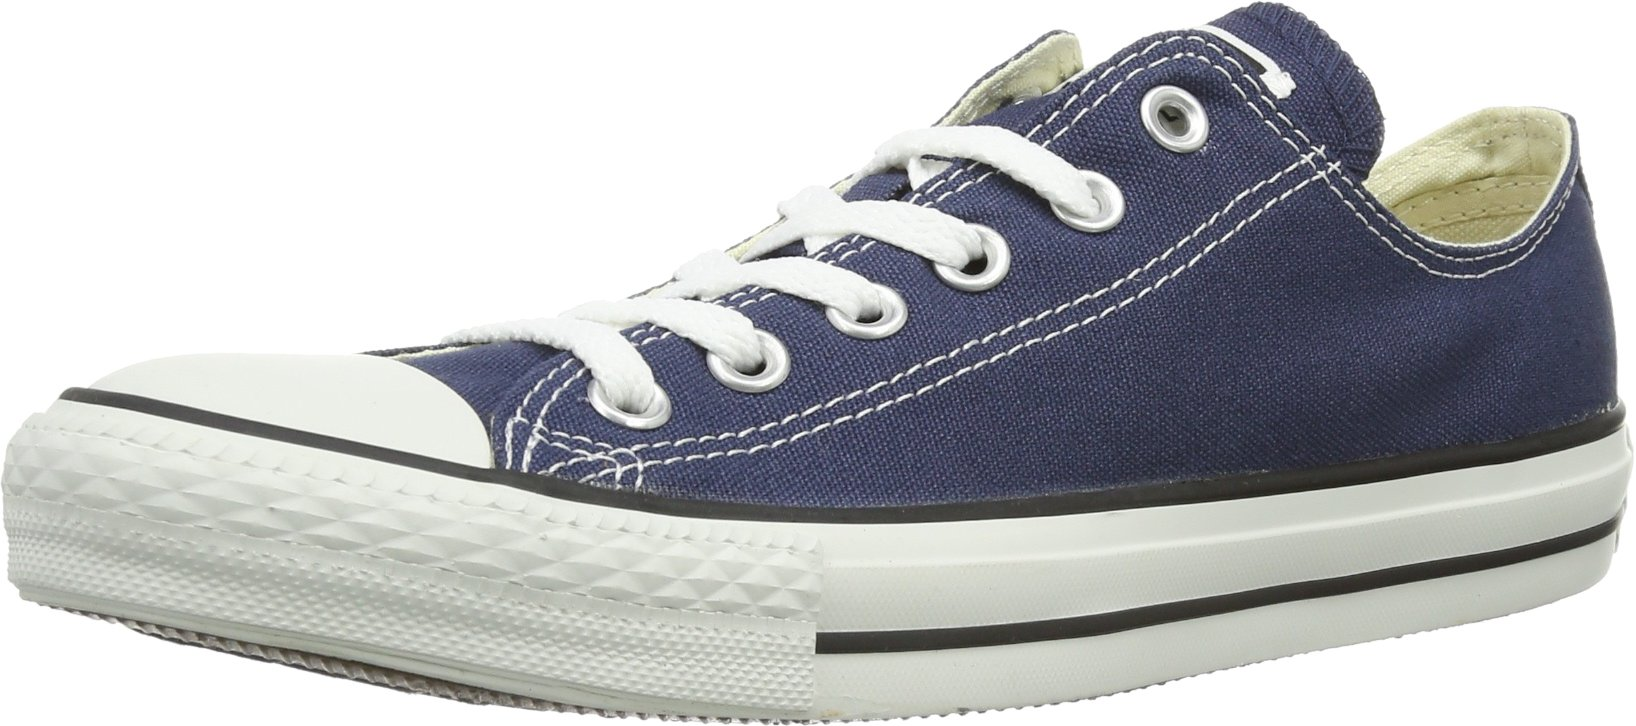 Converse Unisex Chuck Taylor All Star Ox Low Top Navy Sneakers - 10.5 M US